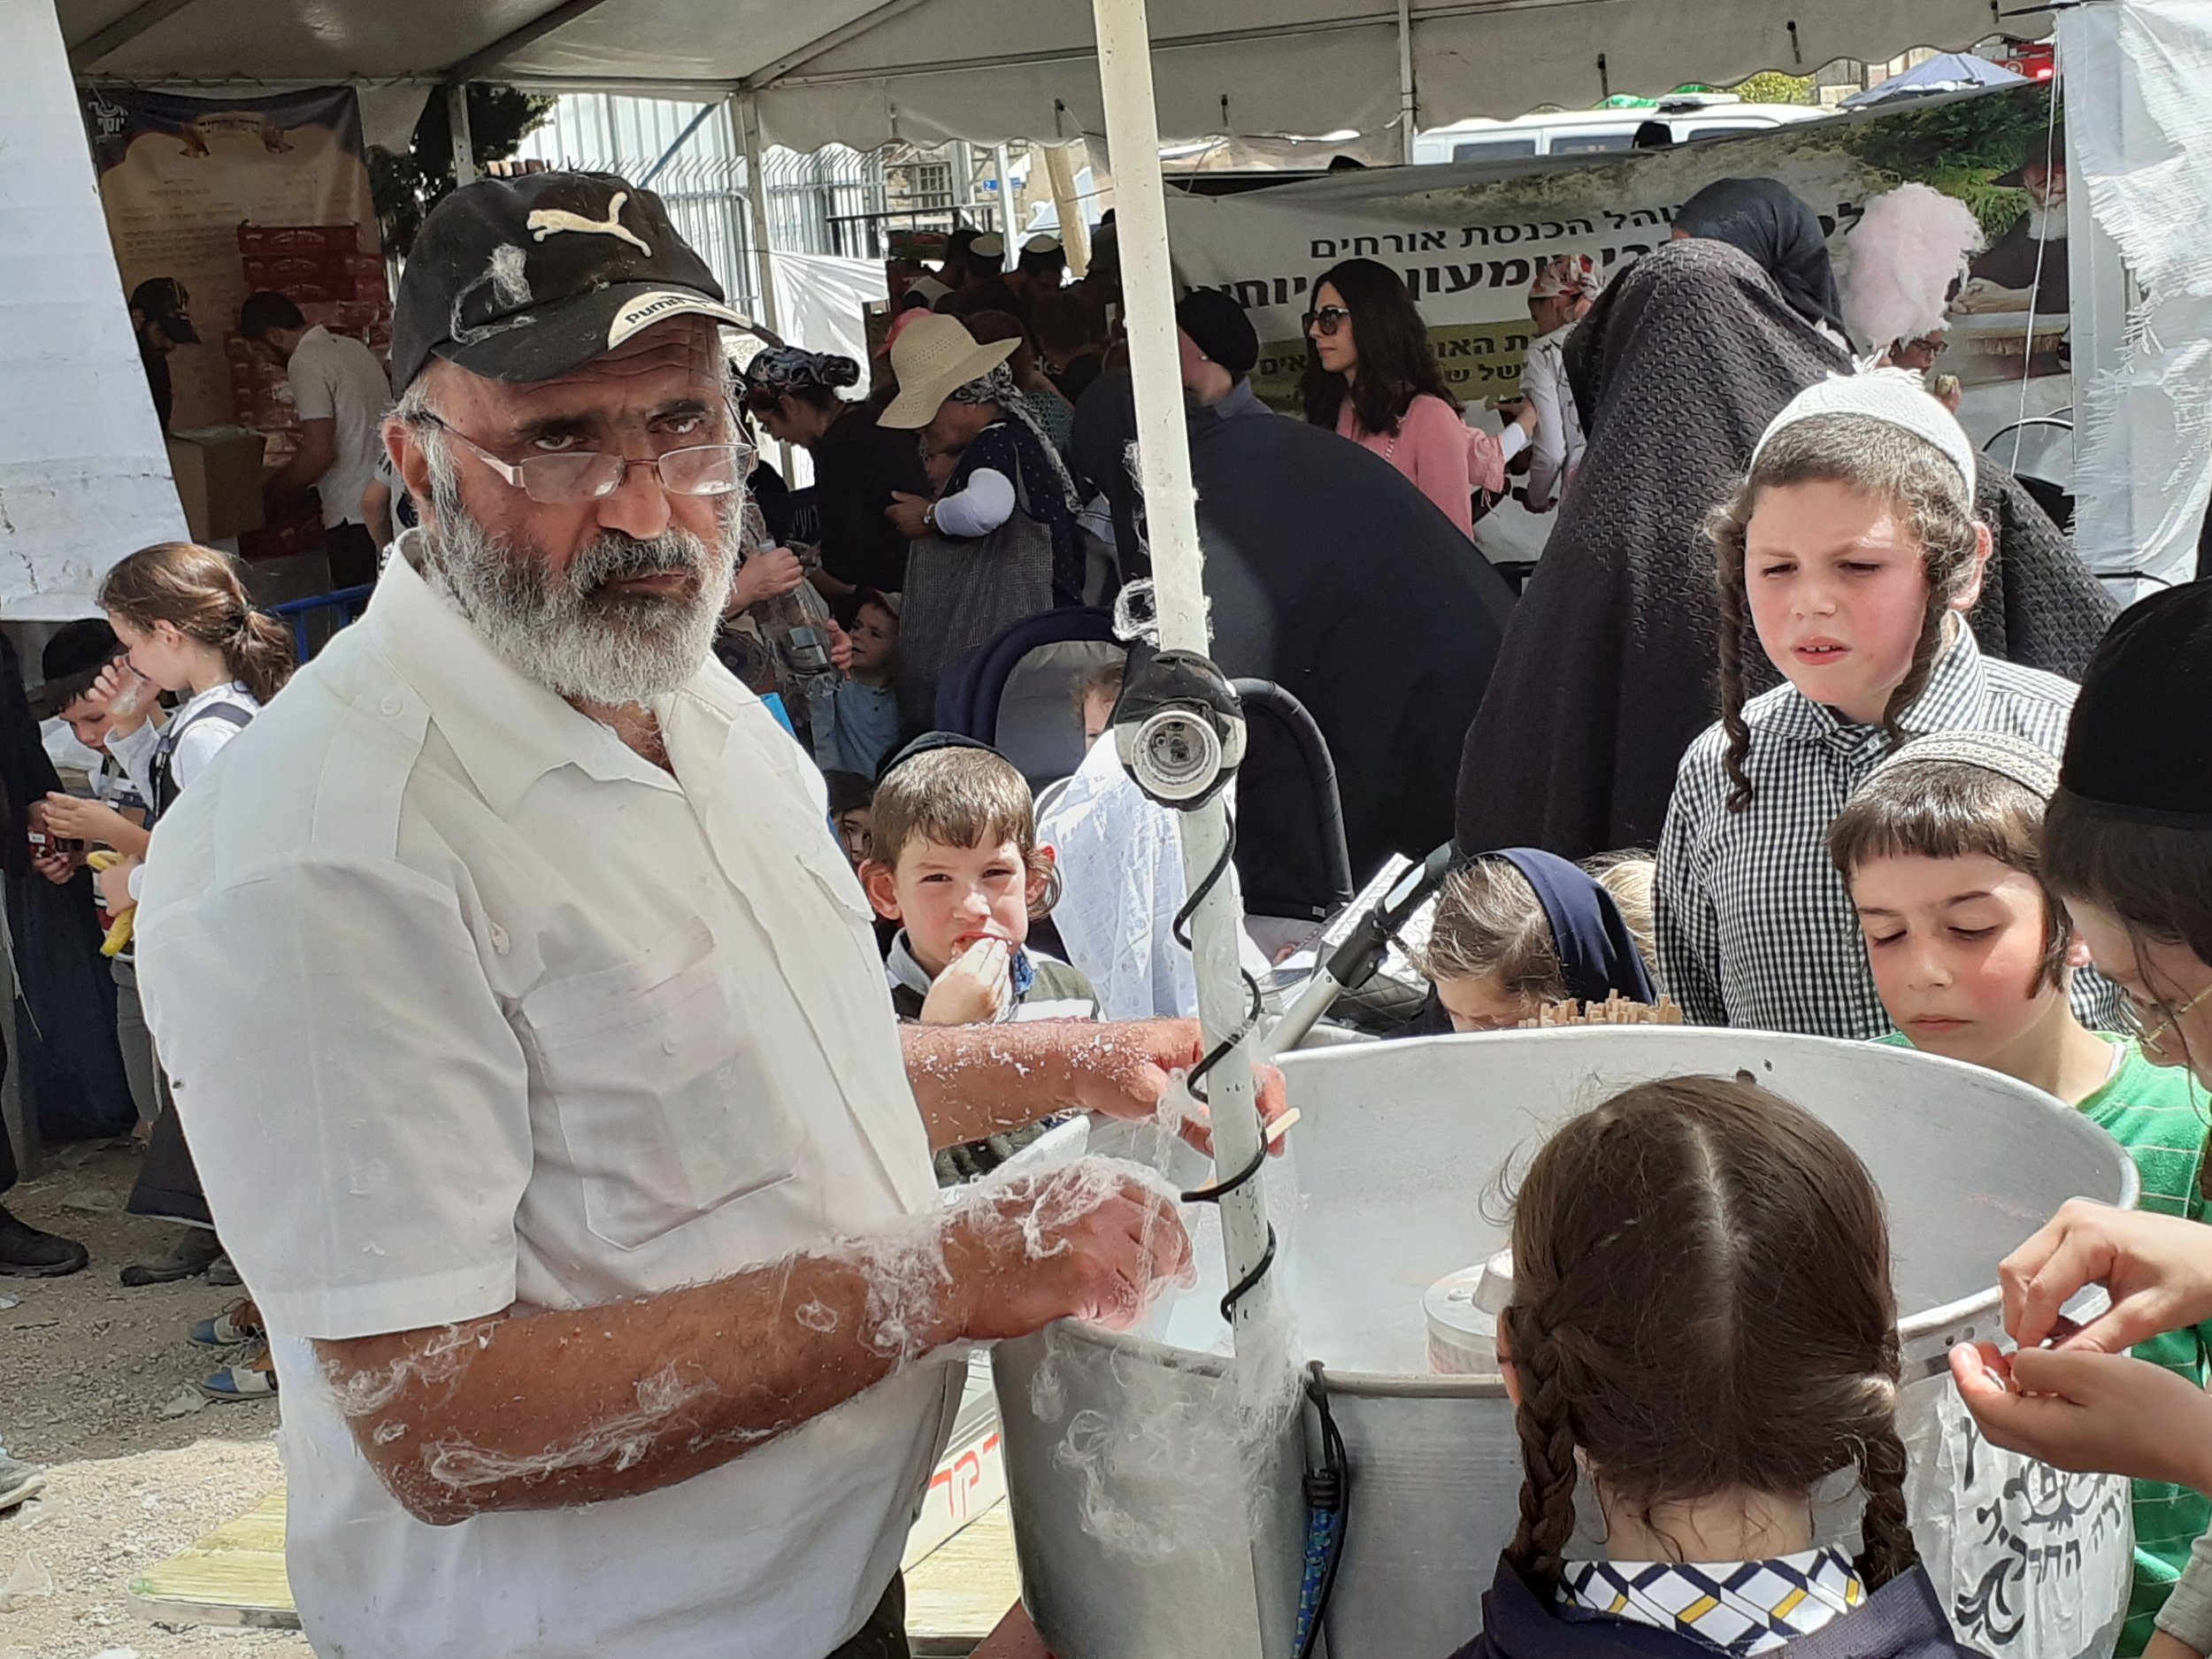 Kids watch a candy floss-maker during Lag b'Omer. Photo by Gil Zohar.